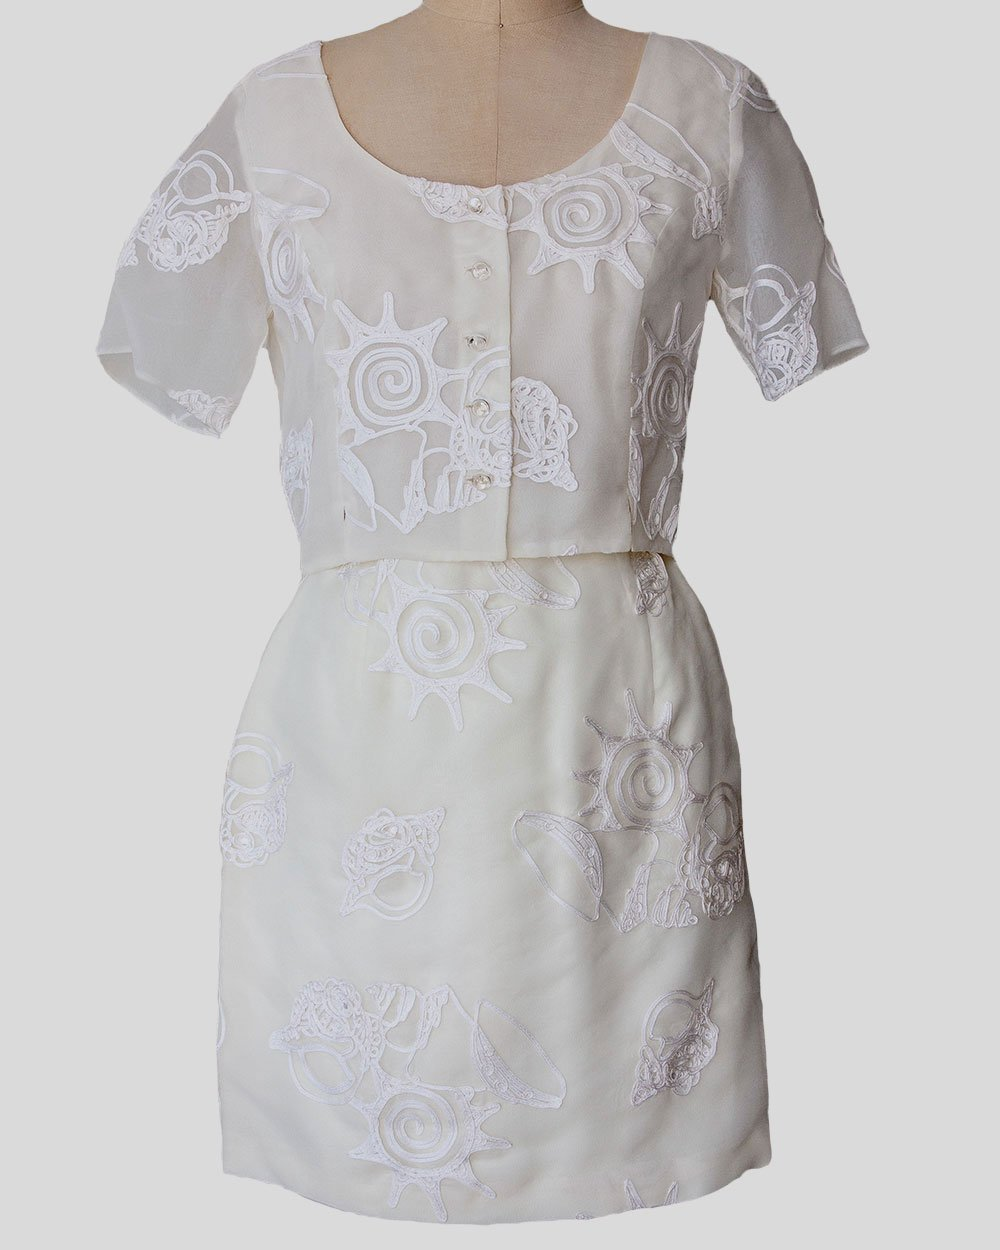 Vintage, Cream Two Piece Lace Embroidered Top and Skirt